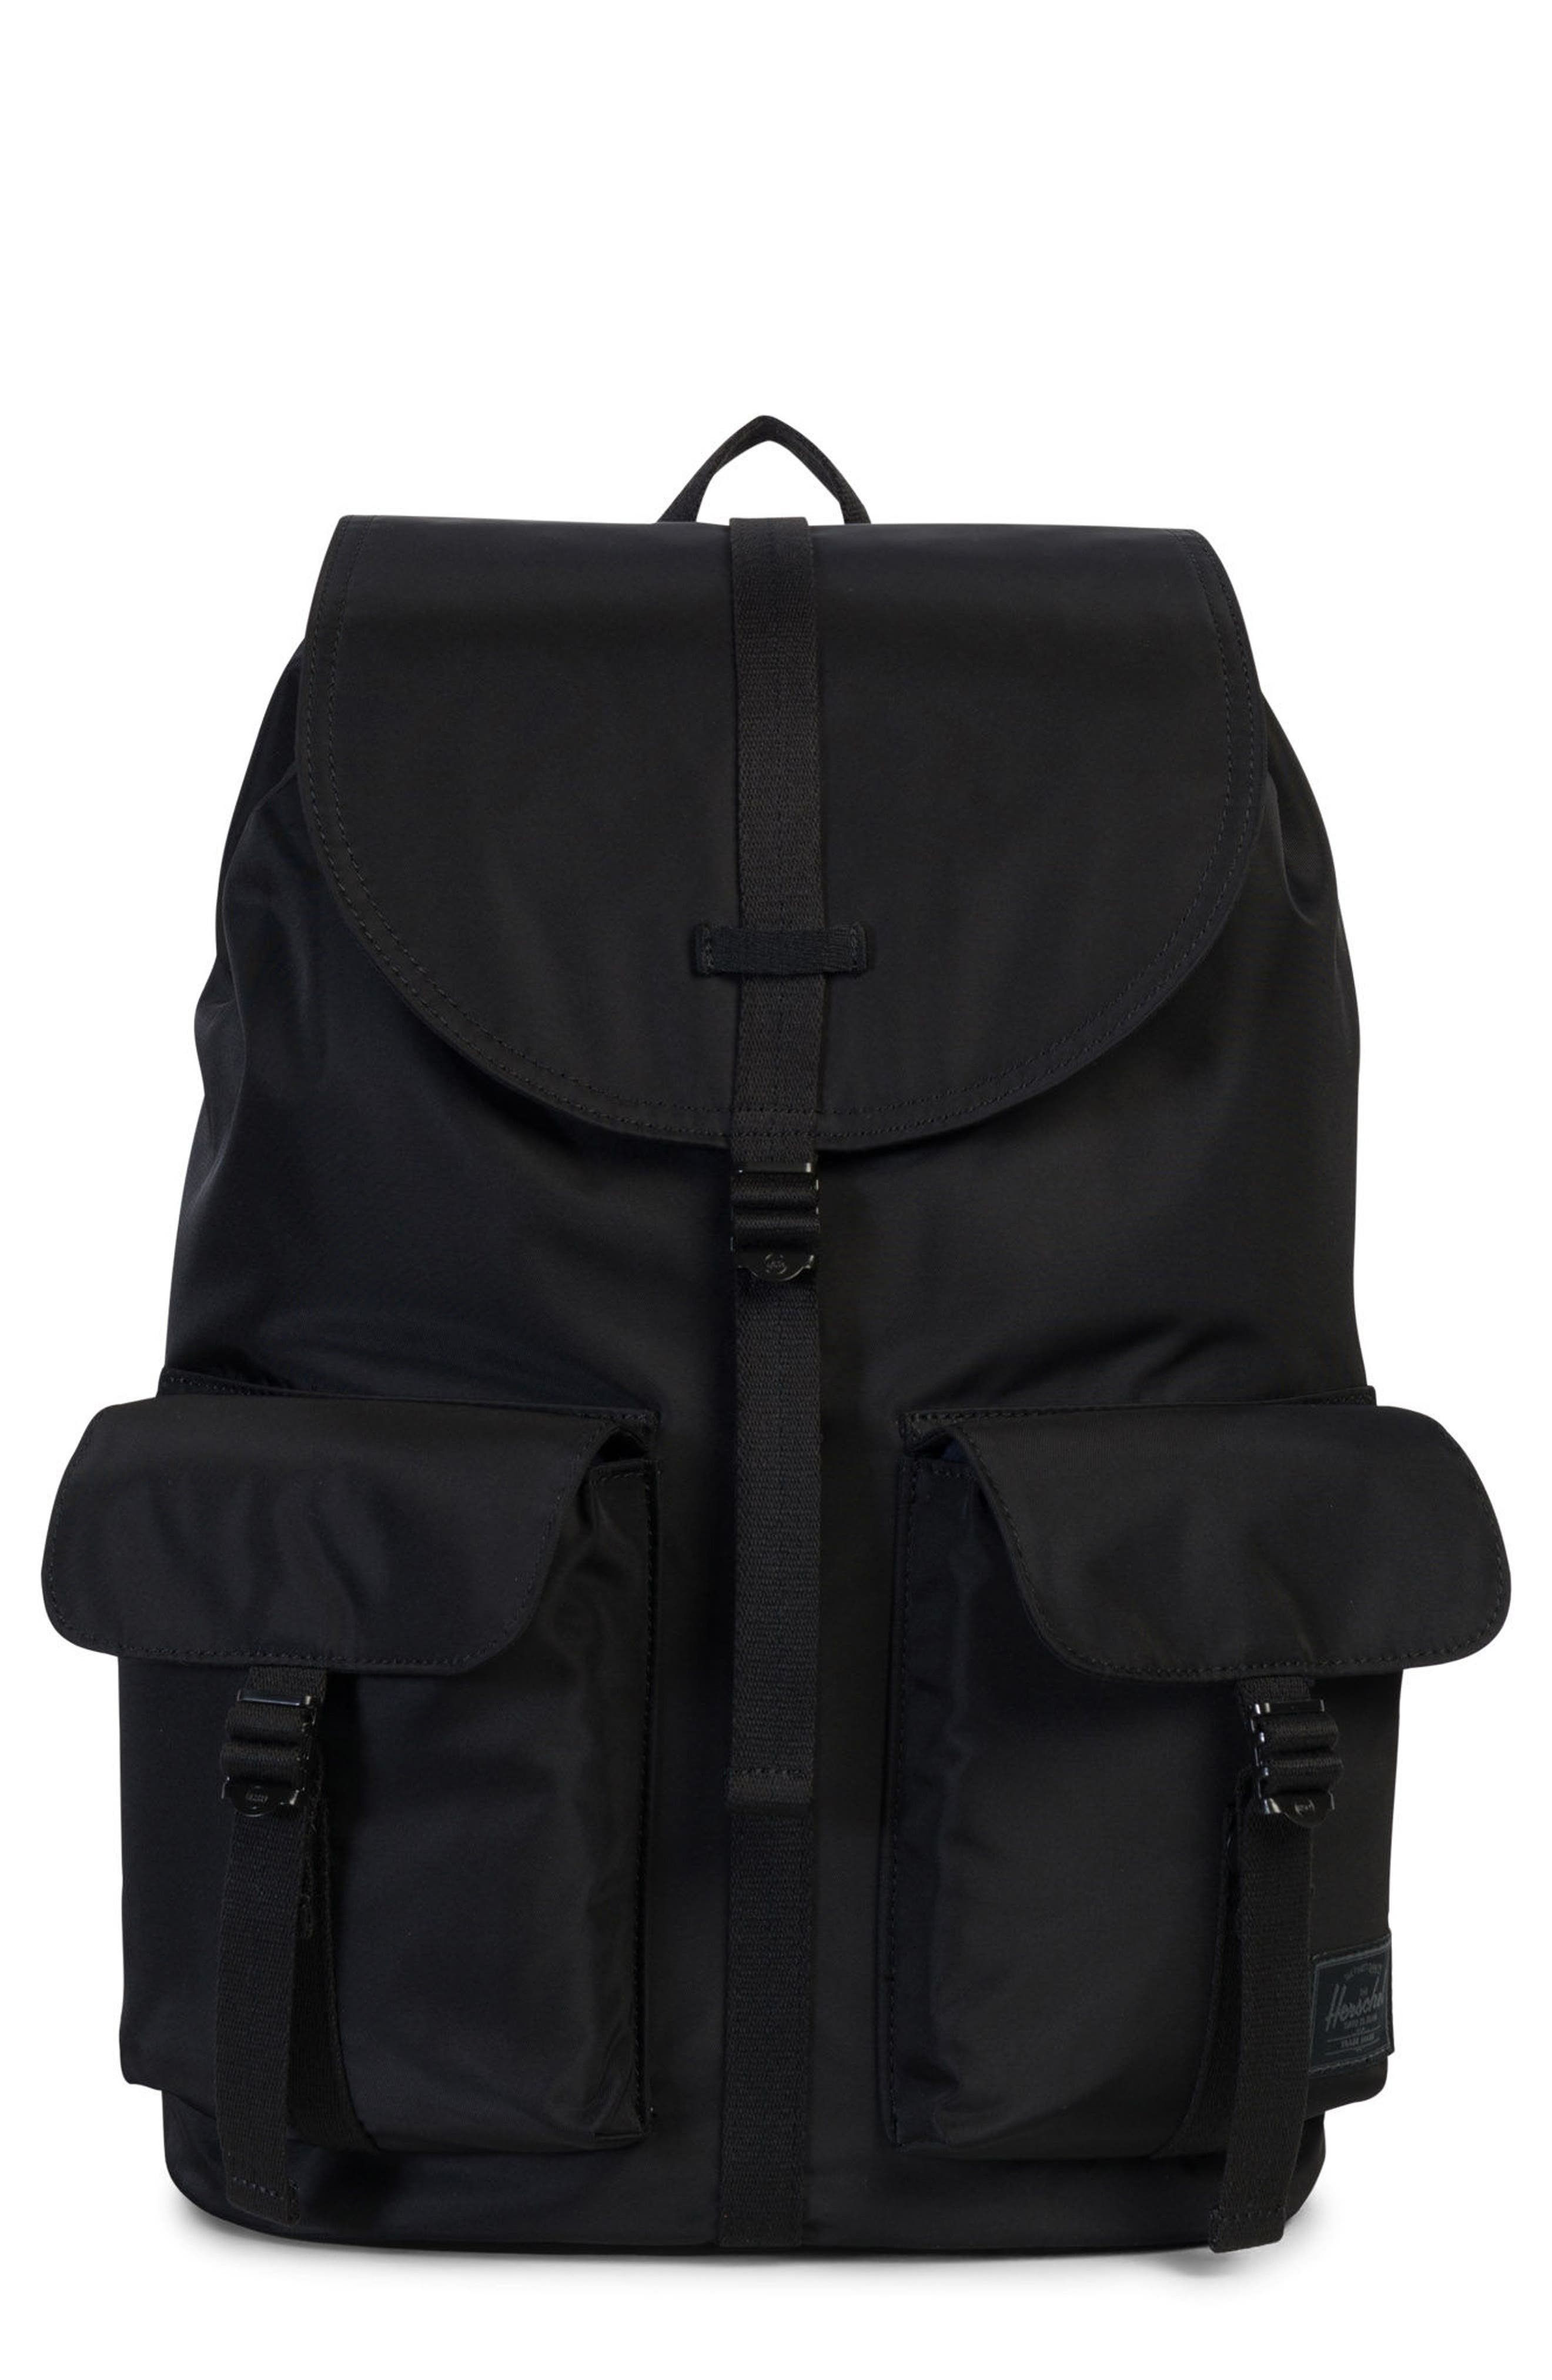 Dawson Surplus Collection Backpack,                         Main,                         color, Black